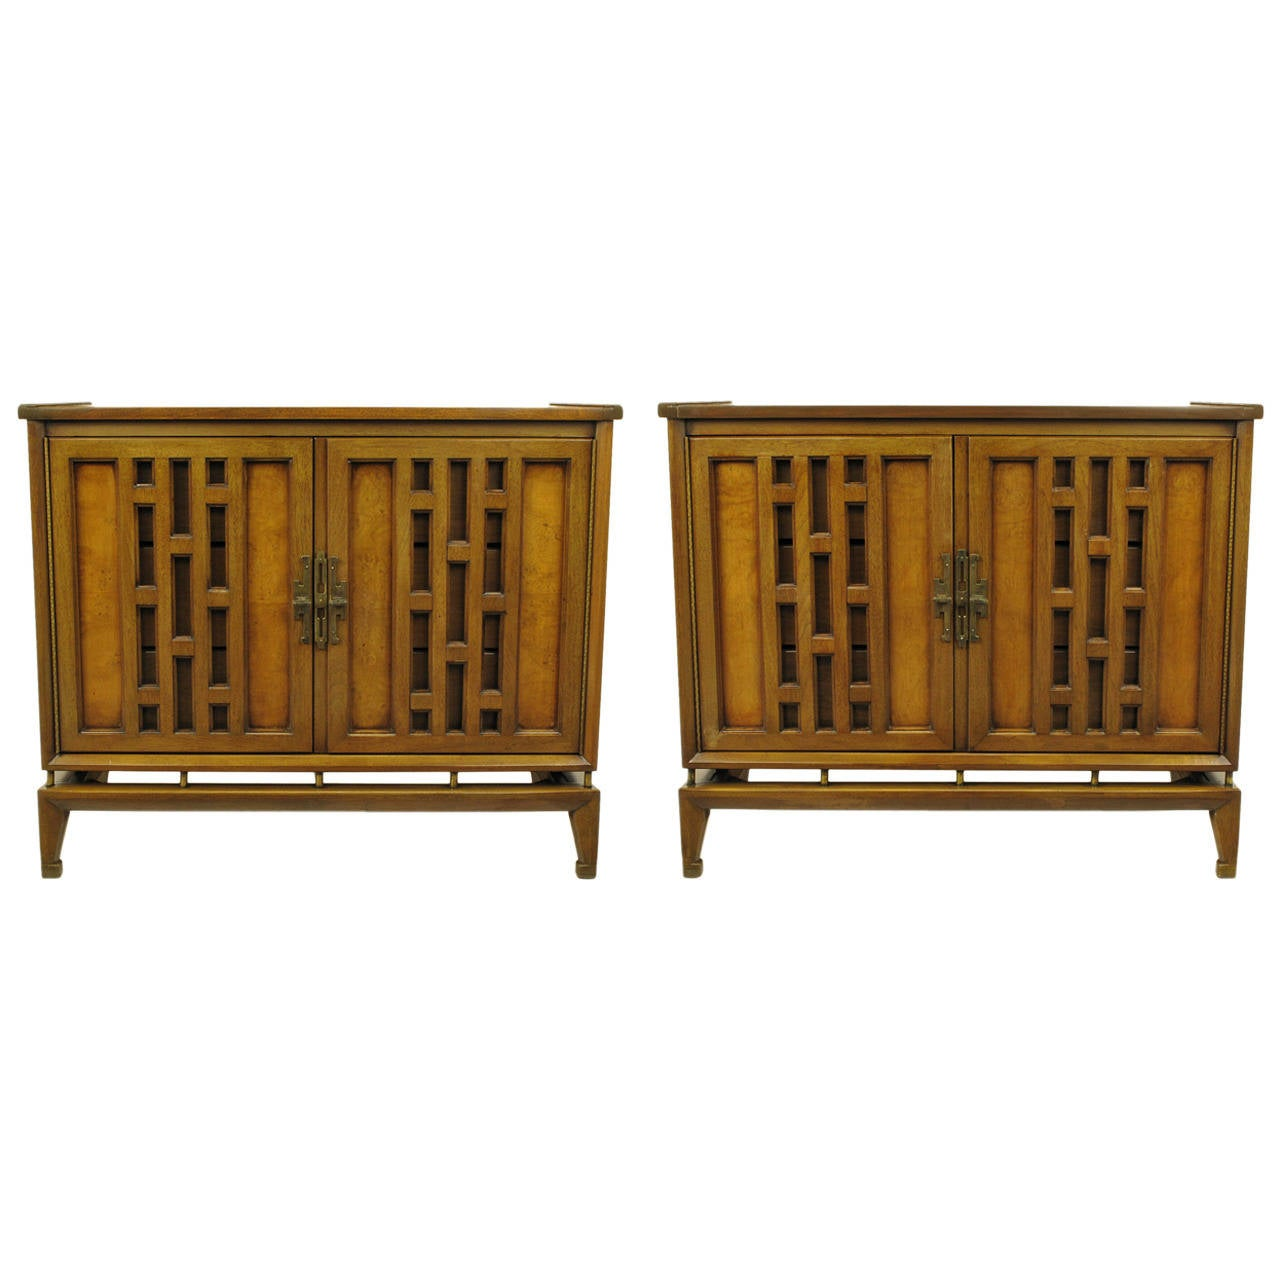 Pair of Walnut and Burl Walnut Floating Commodes with Open Fretwork Doors For Sale